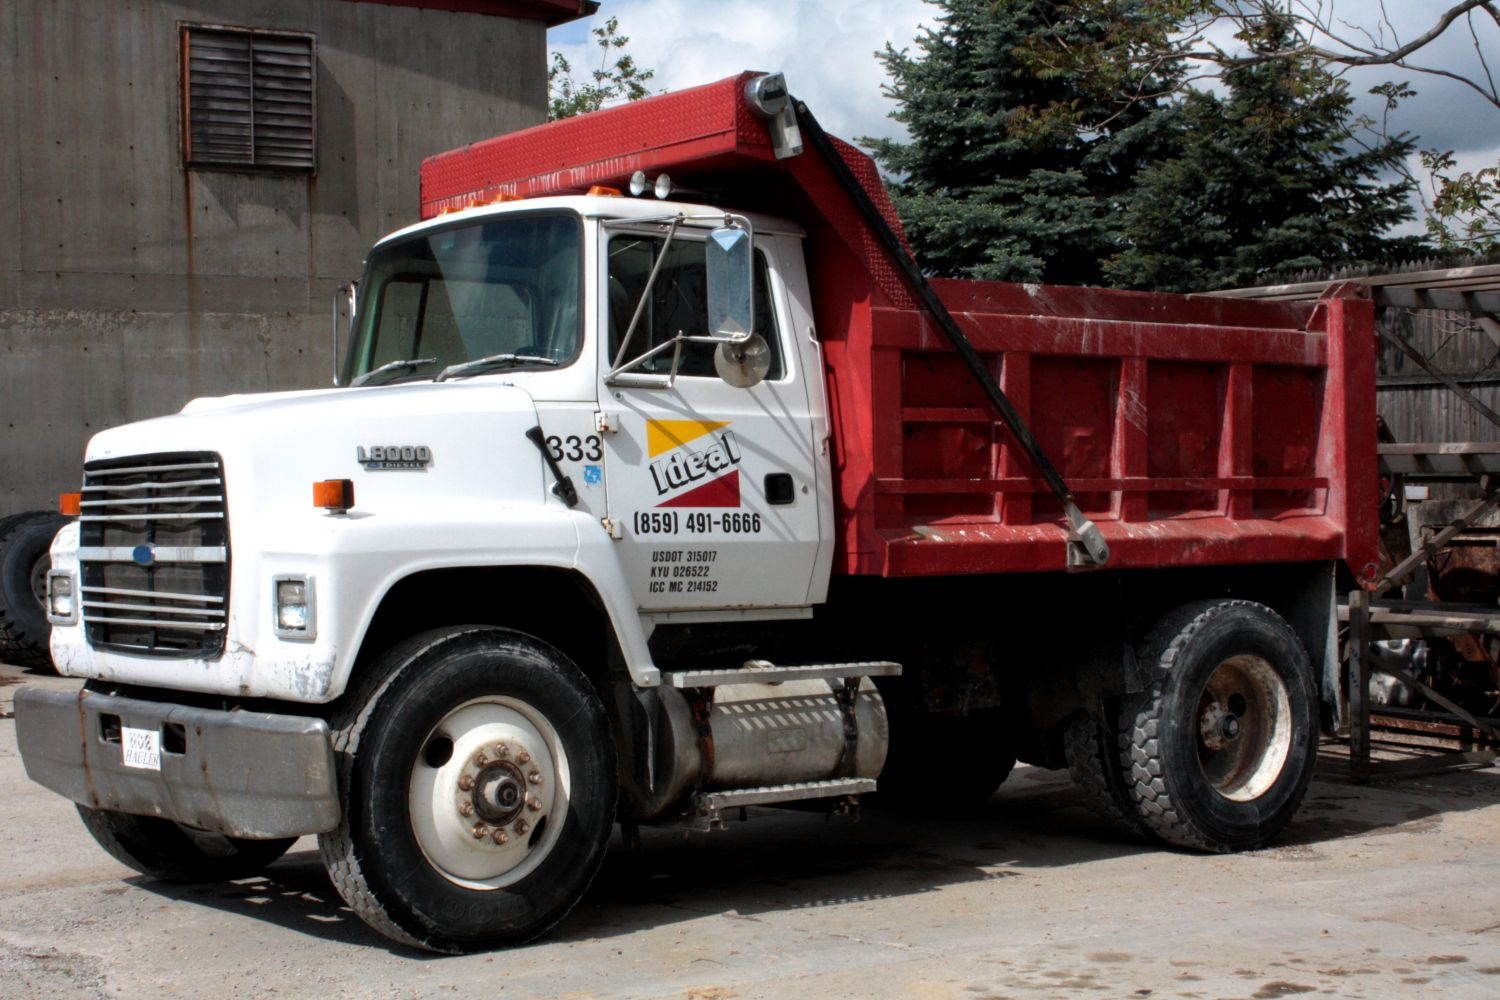 Dump truck for building supplies and landscaping in Ludlow, KY